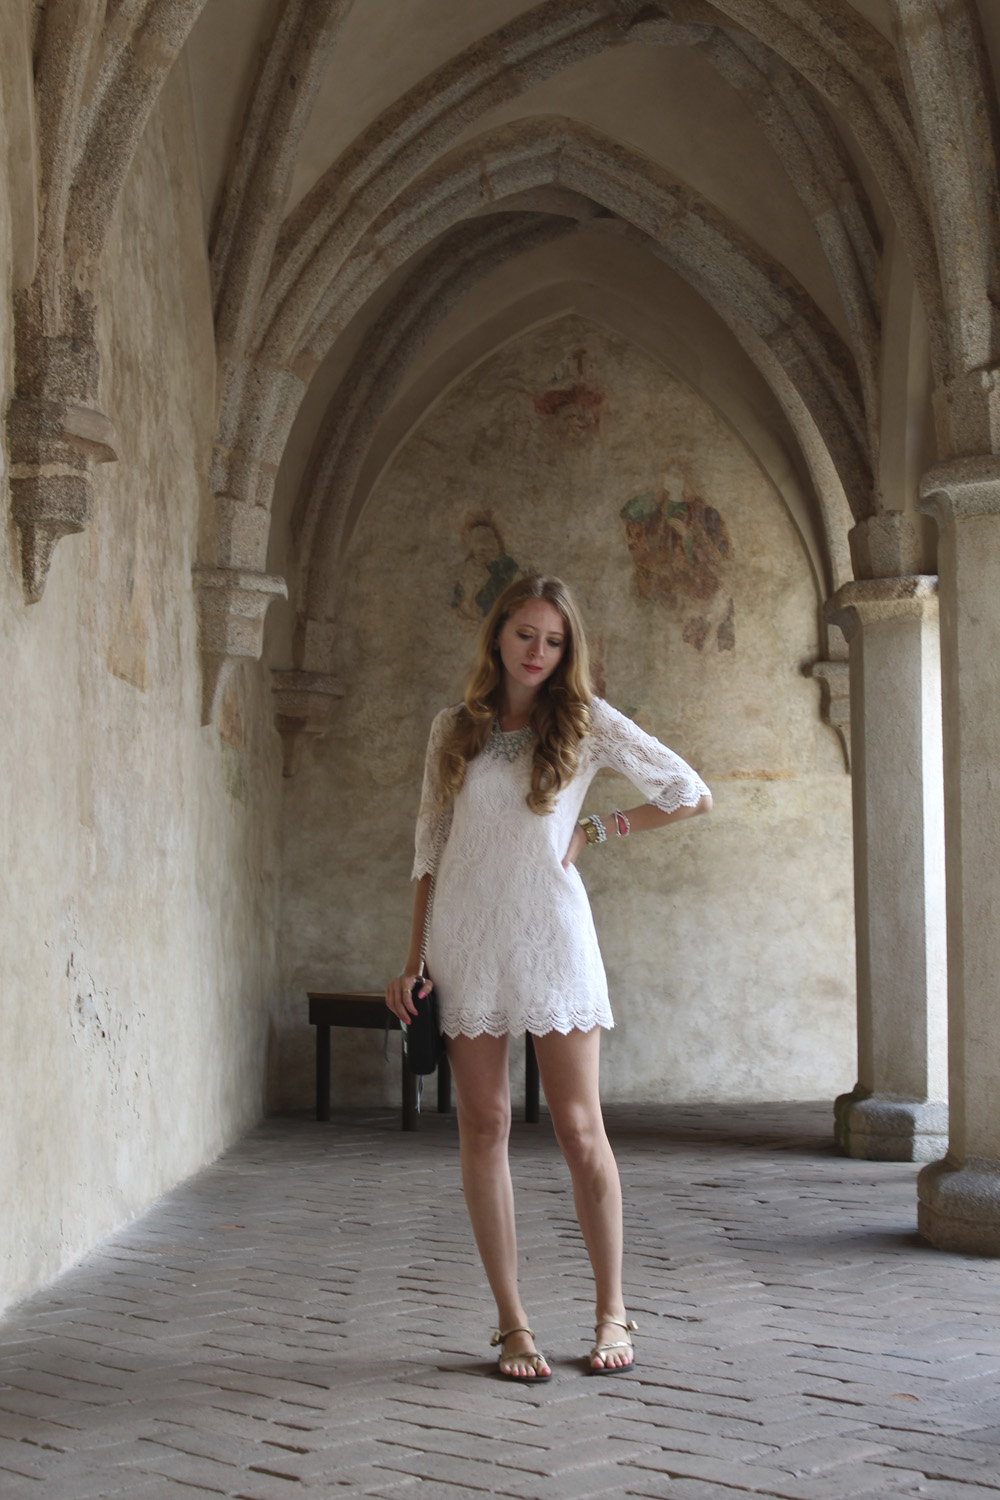 midieval arches white dress